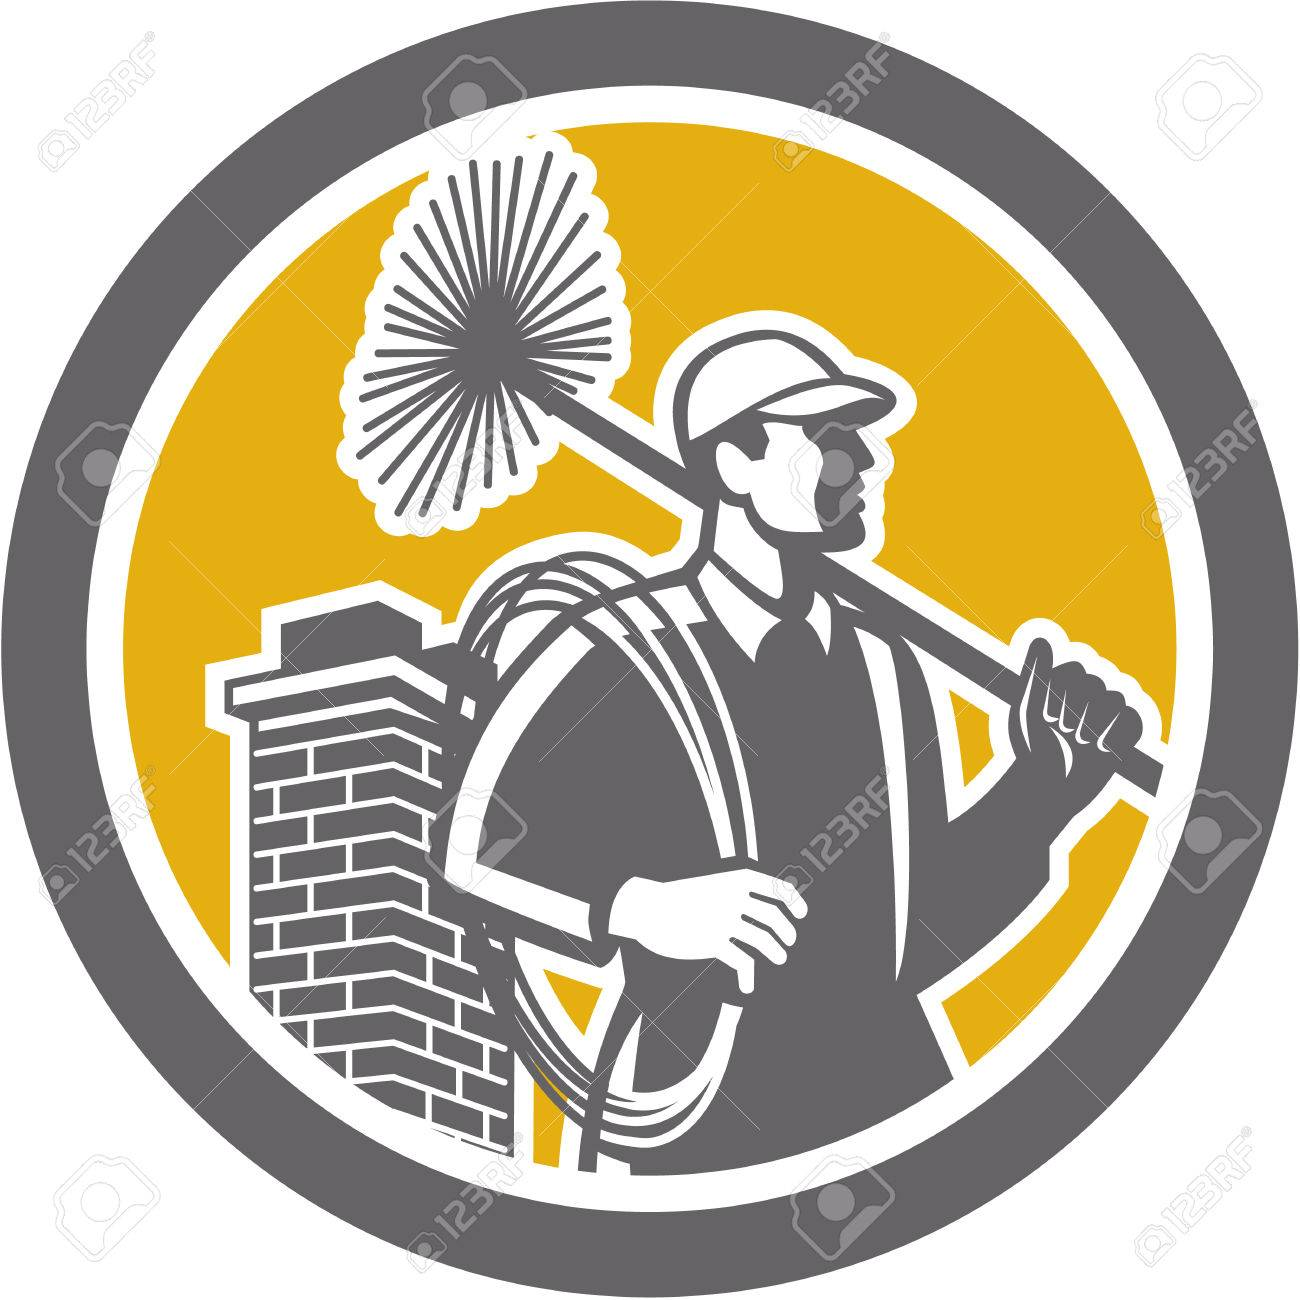 Illustration of a chimney sweep holding sweeper and rope viewed from side set inside circle on isolated background done in retro style. Stock Vector - 28260559